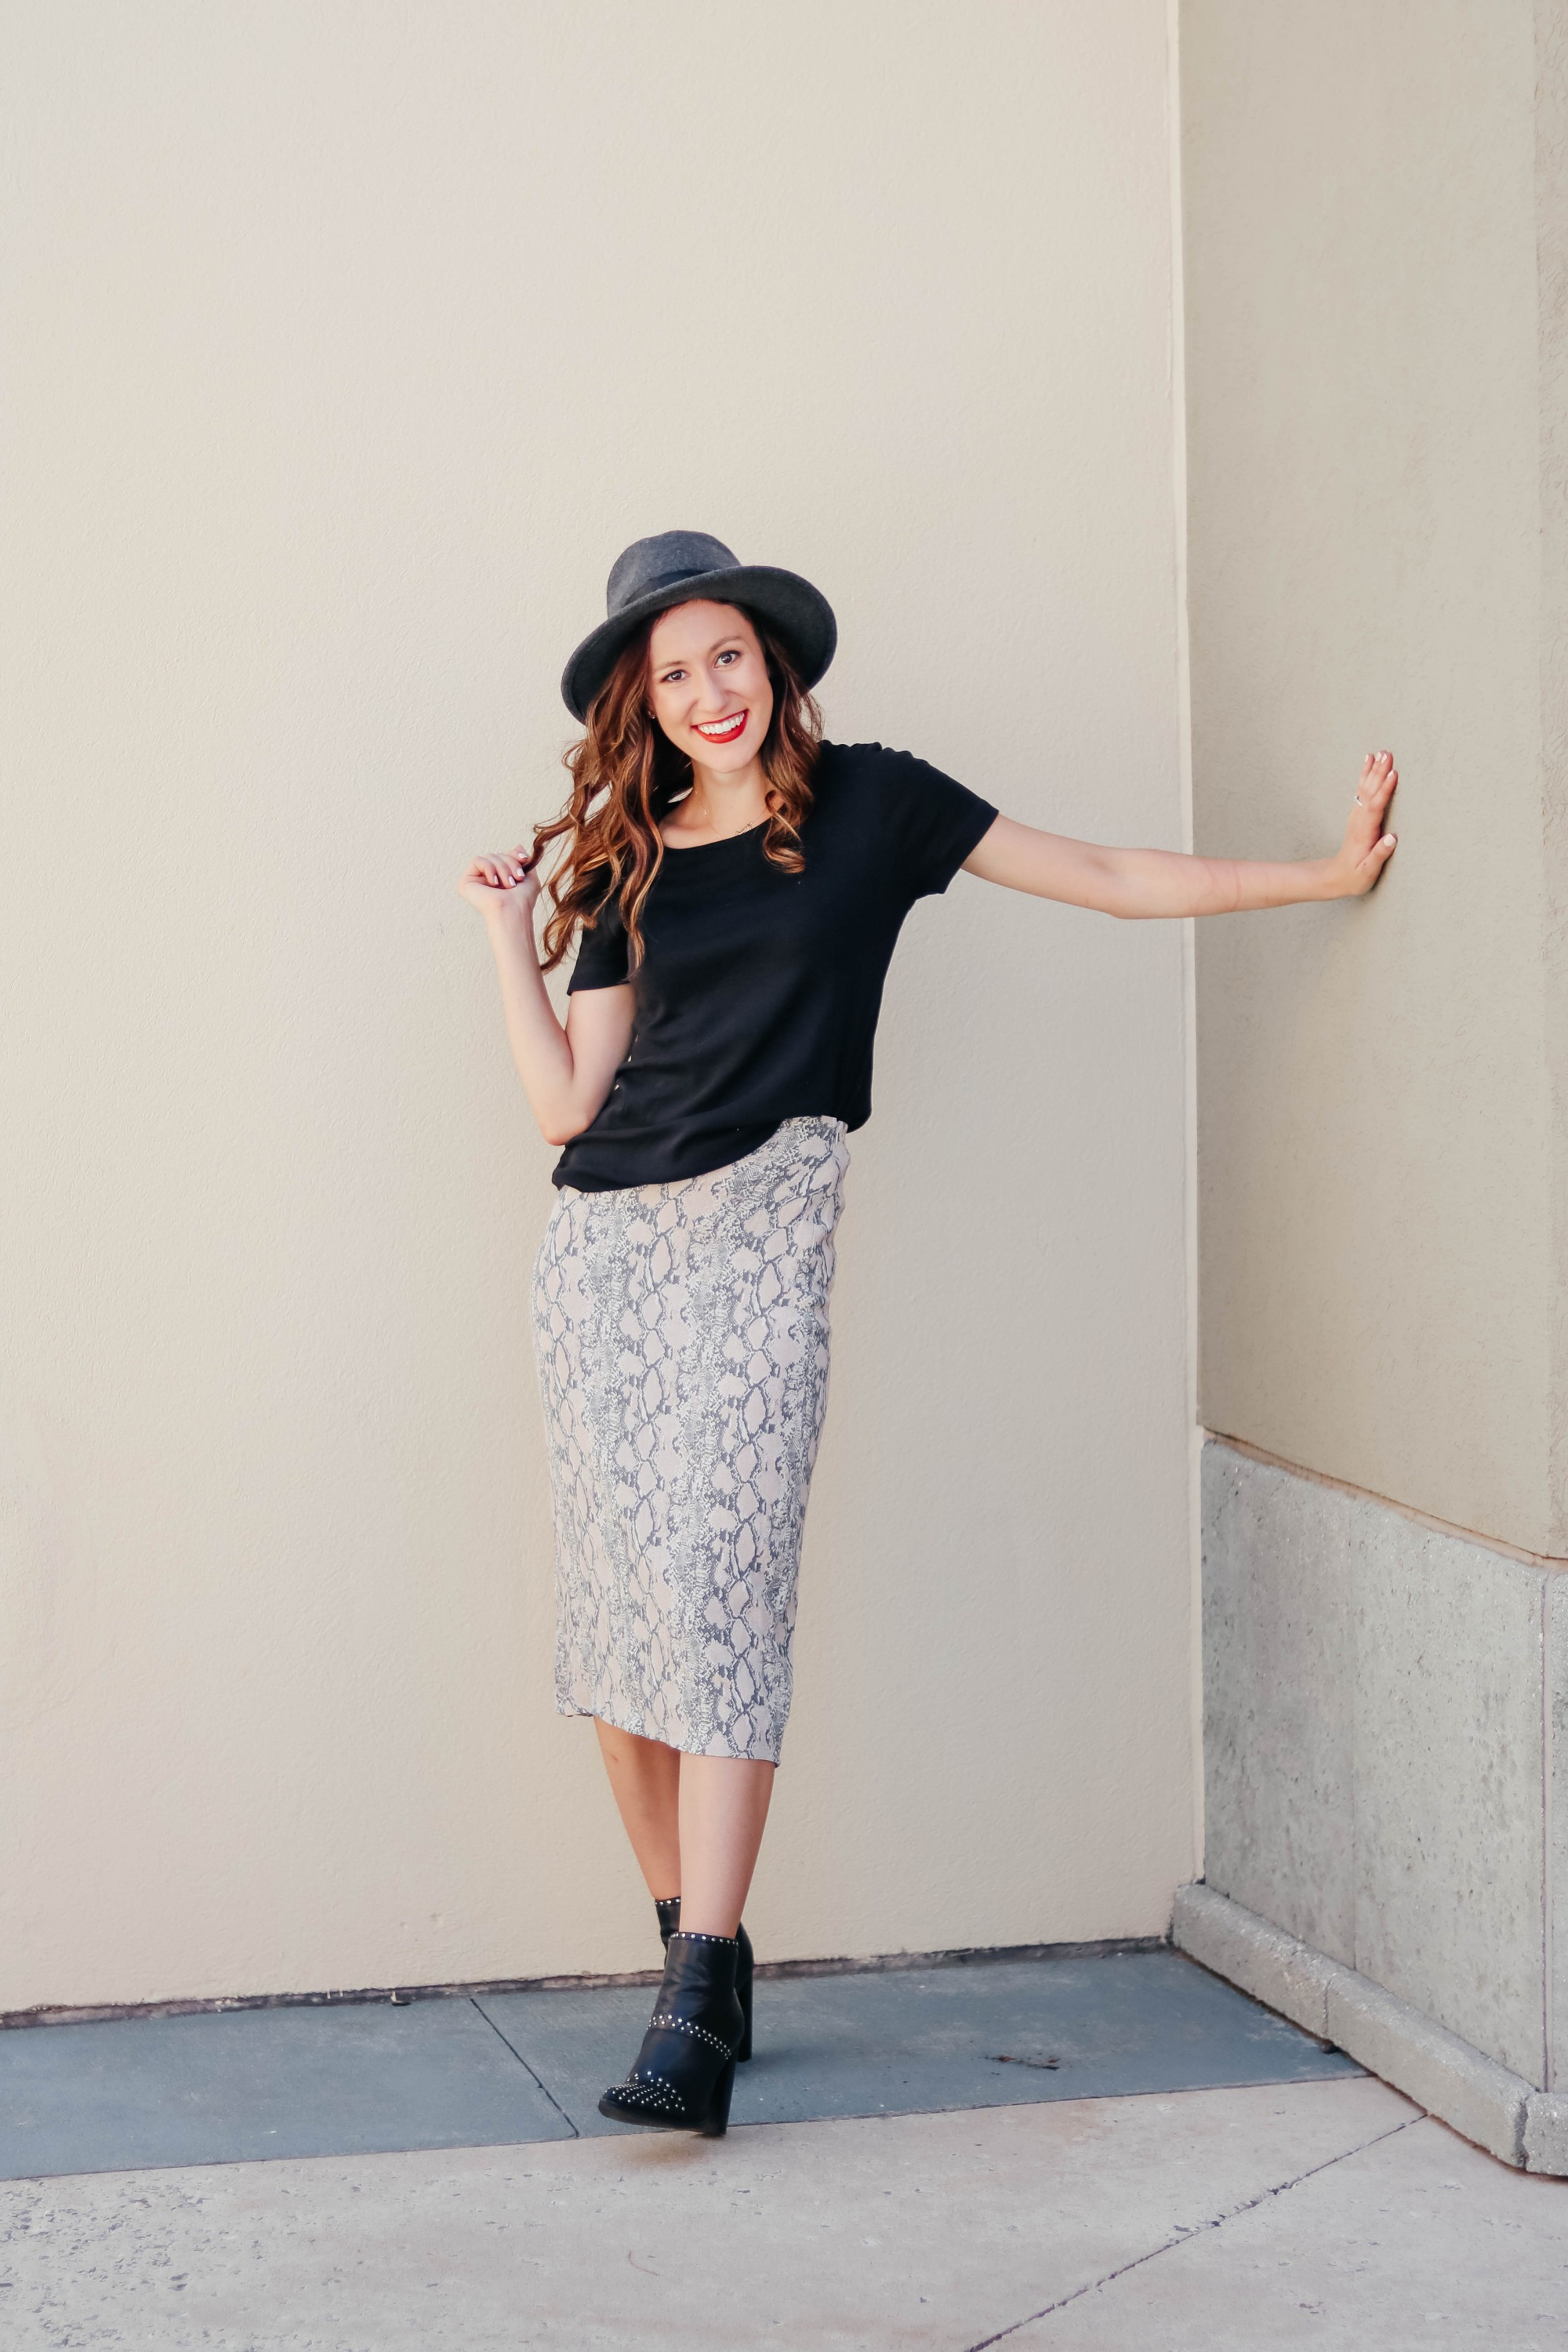 Snakeskin midi skirt outfit for fall - #AskE Q&A post on Coming Up Roses talking about shoe shelves, working at home with a baby, tall fall boots under $50, Tula discount code, + MORE